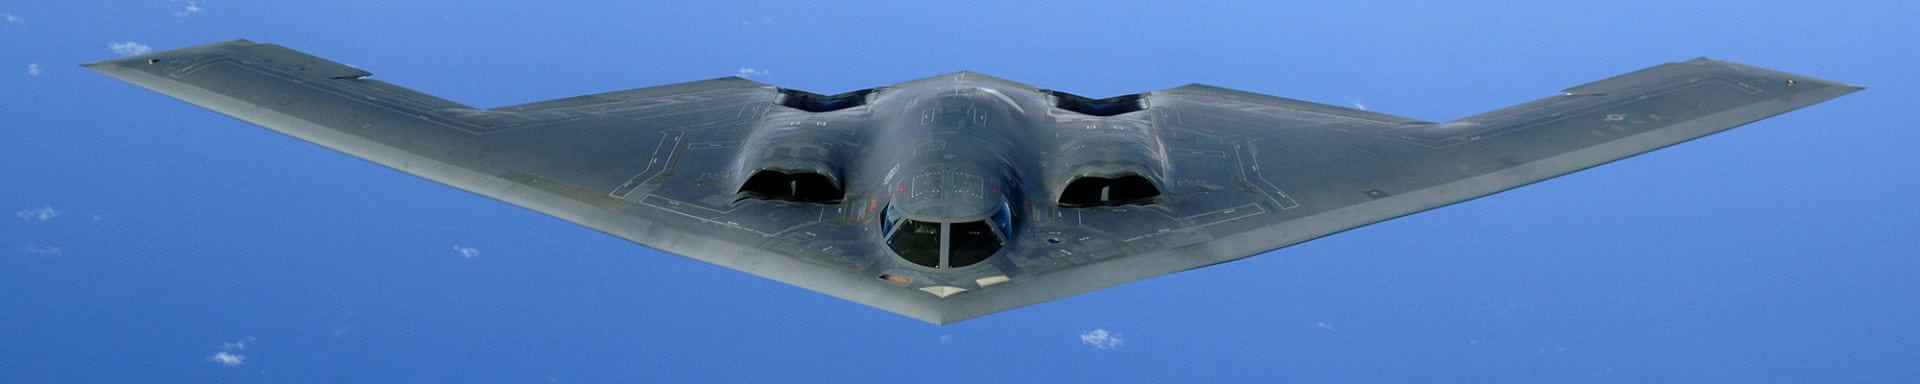 Delta Wings Stealth Bomber Aircraft